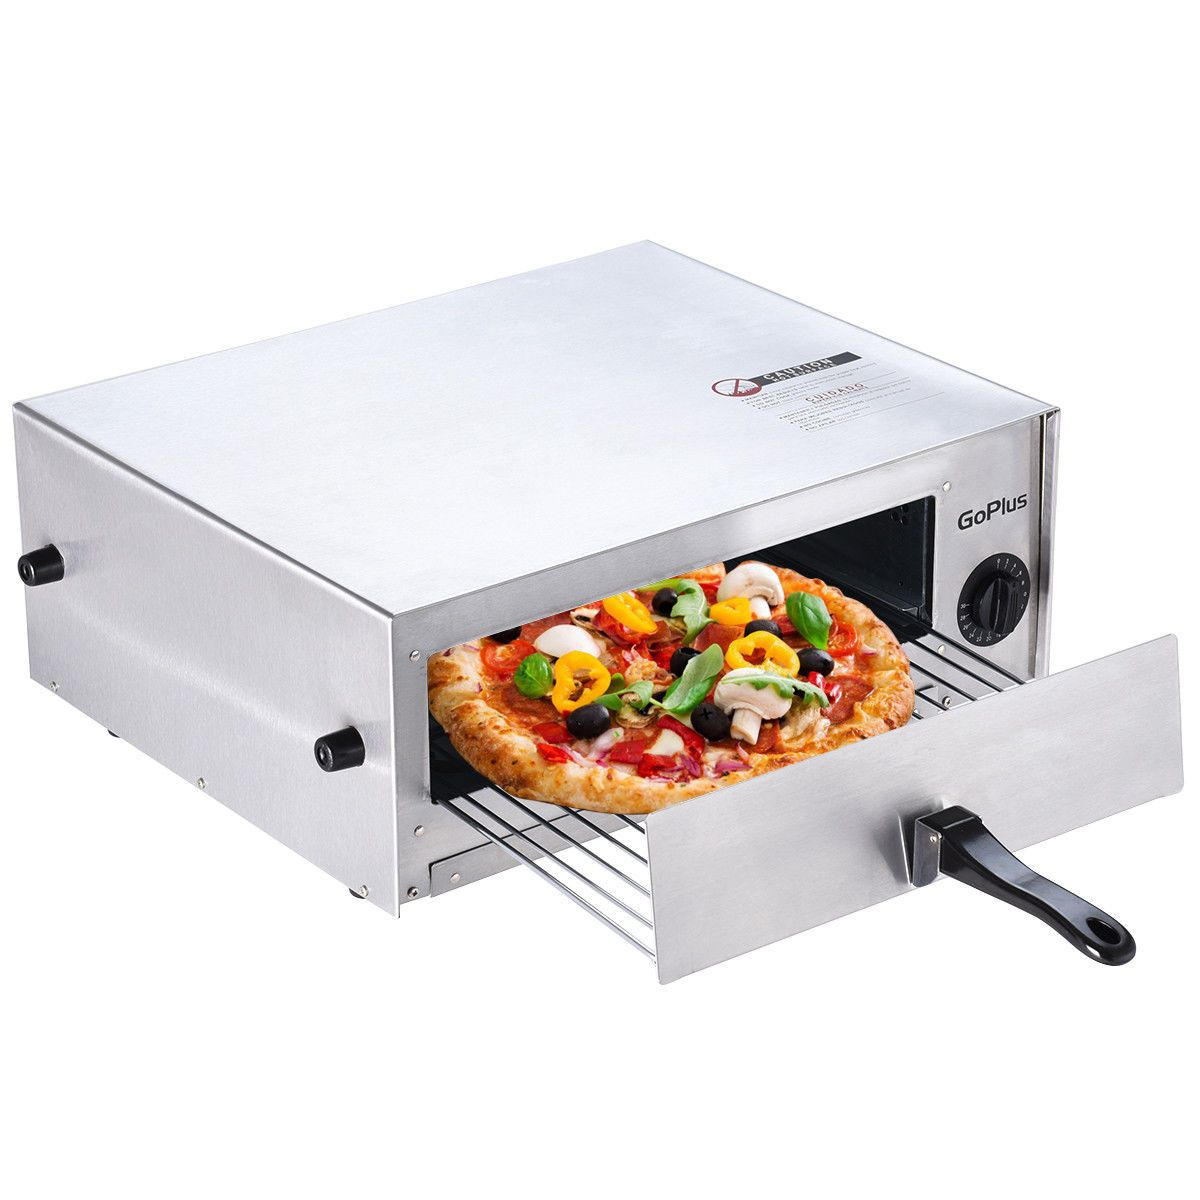 Details About Home Kitchen Pizza Oven Stainless Steel Counter Top